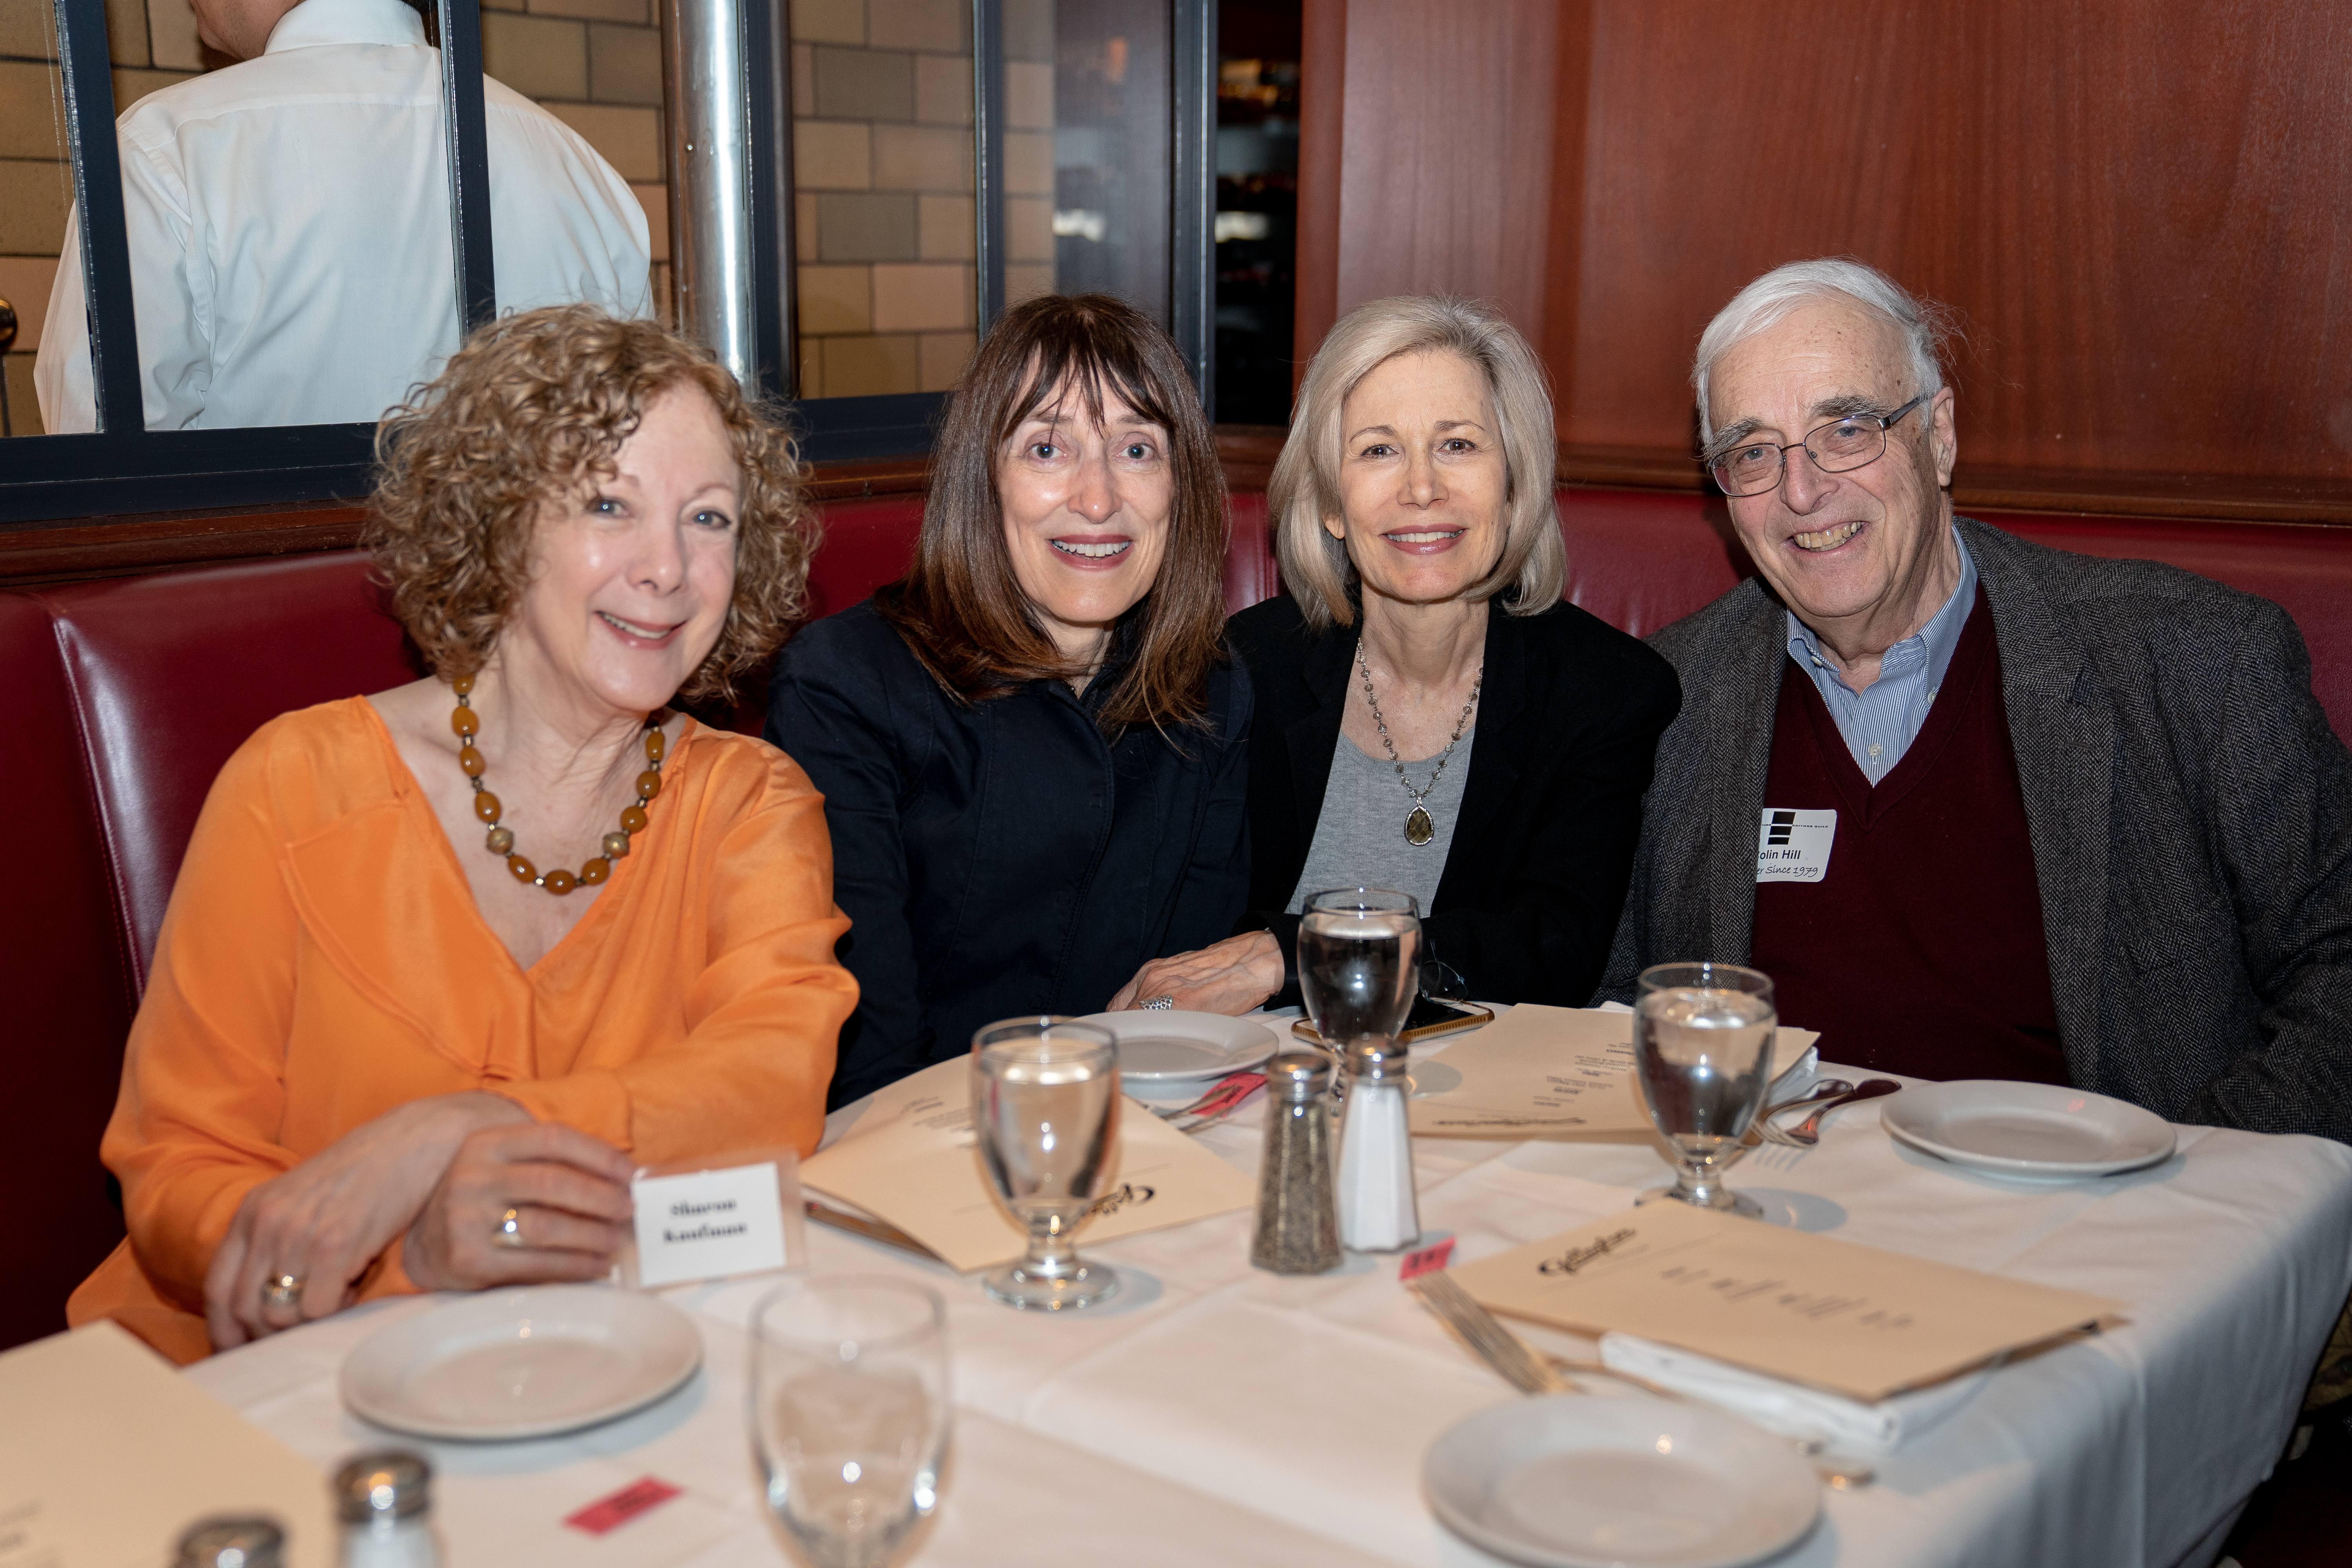 Sharon Kaufman, Sylvia Walliga, Lisa Shreve, Colin Hill